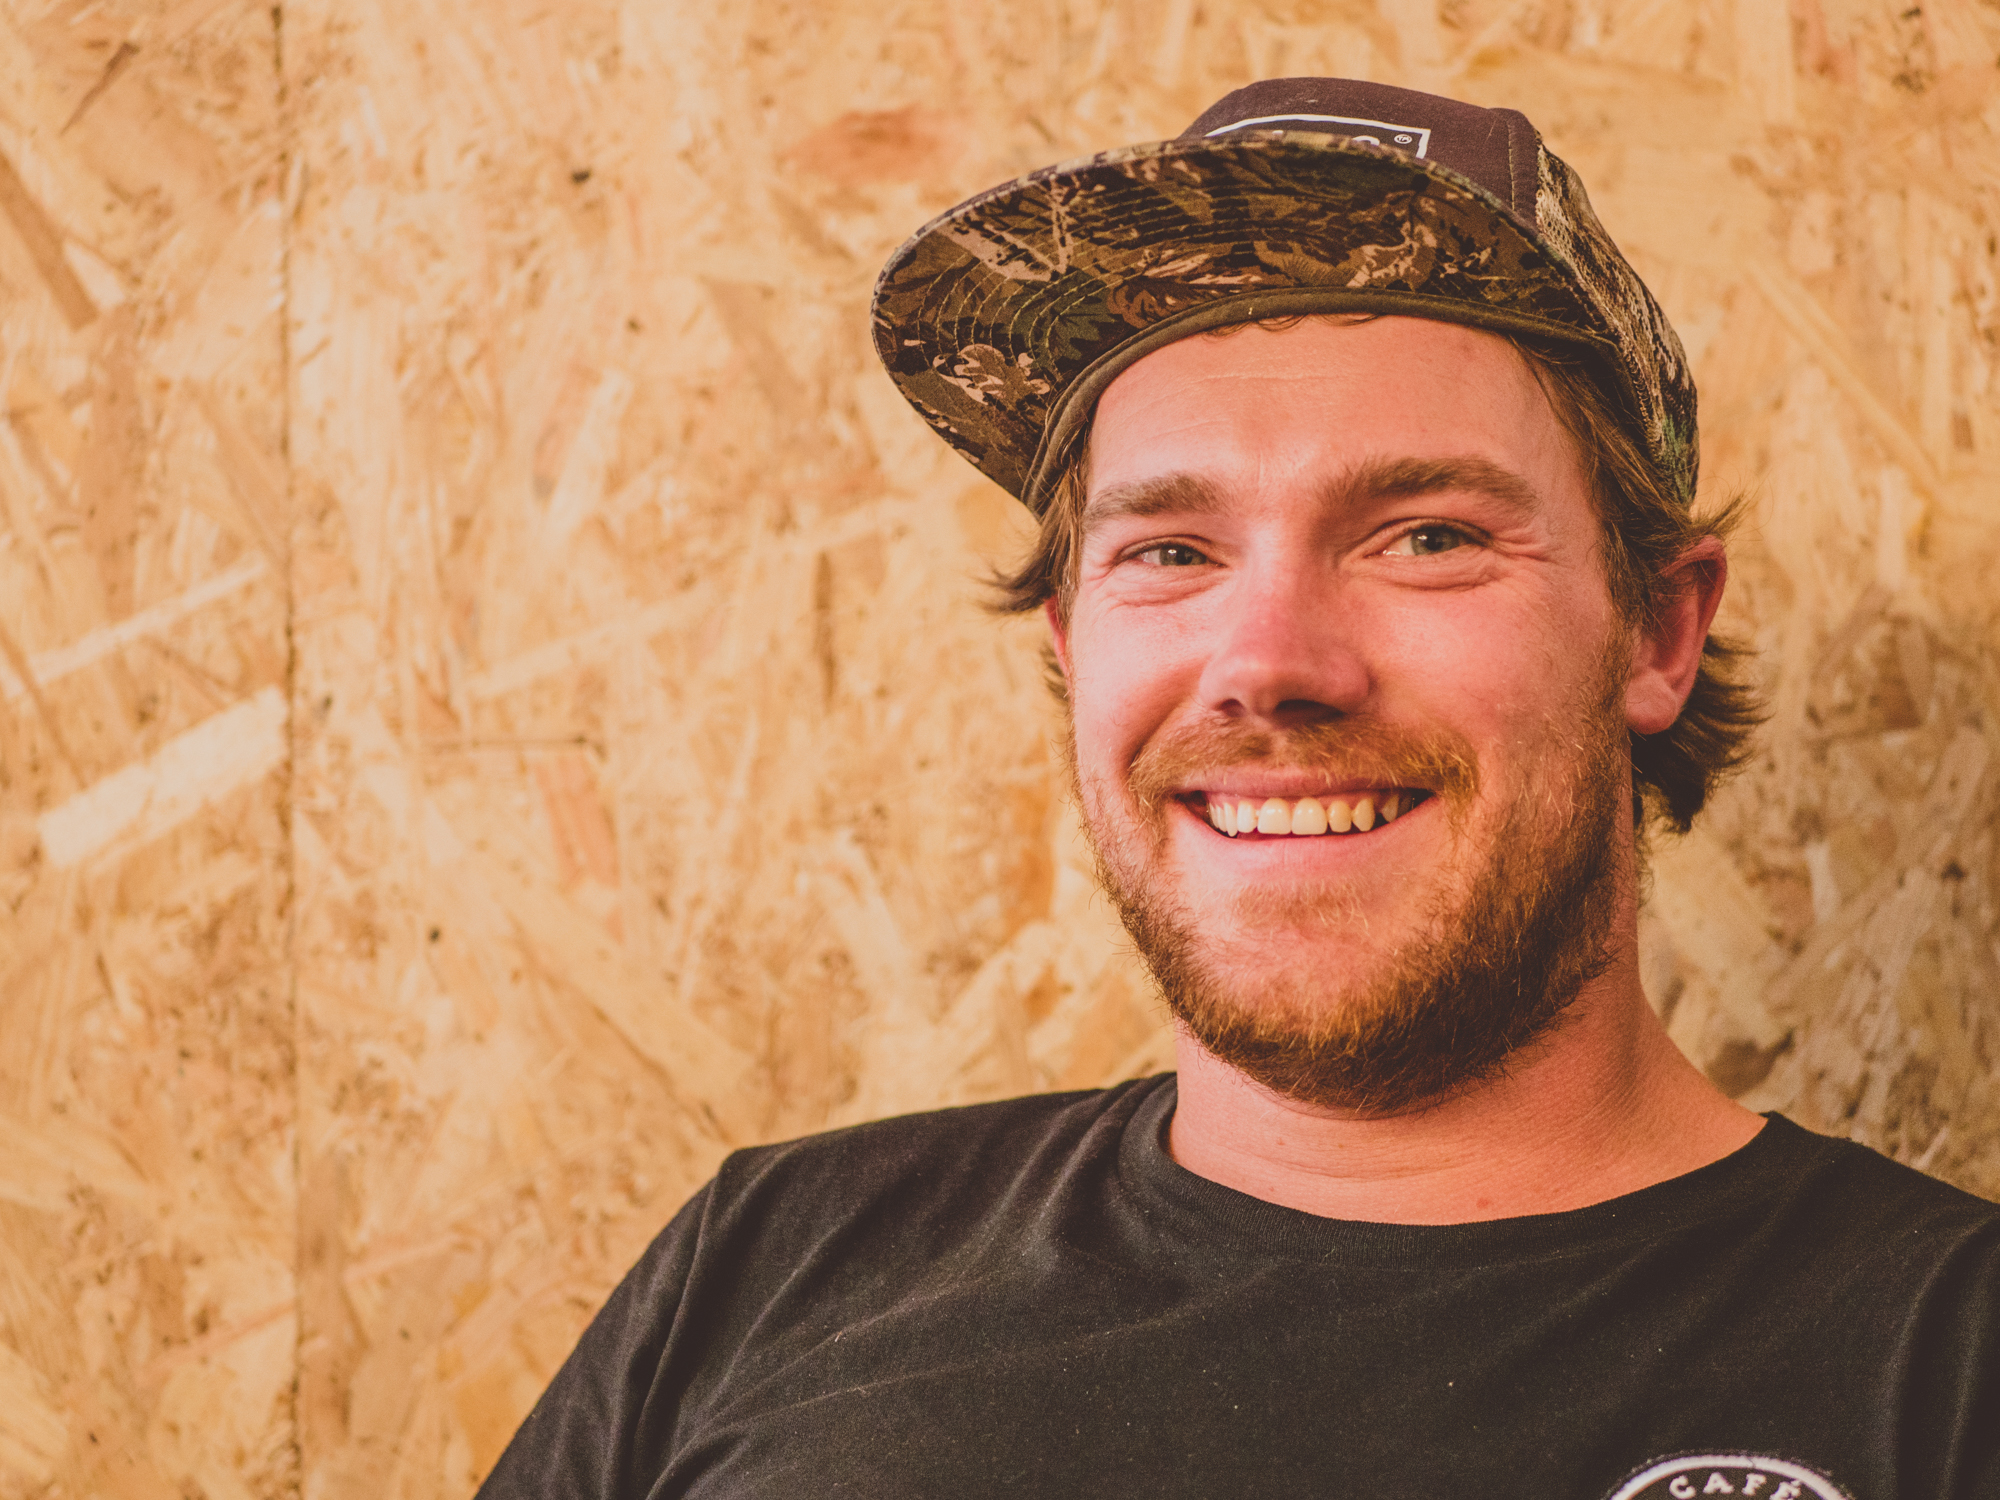 Kyle Dickson  - - Owner at Cafe Chaud & Hideout Hostel